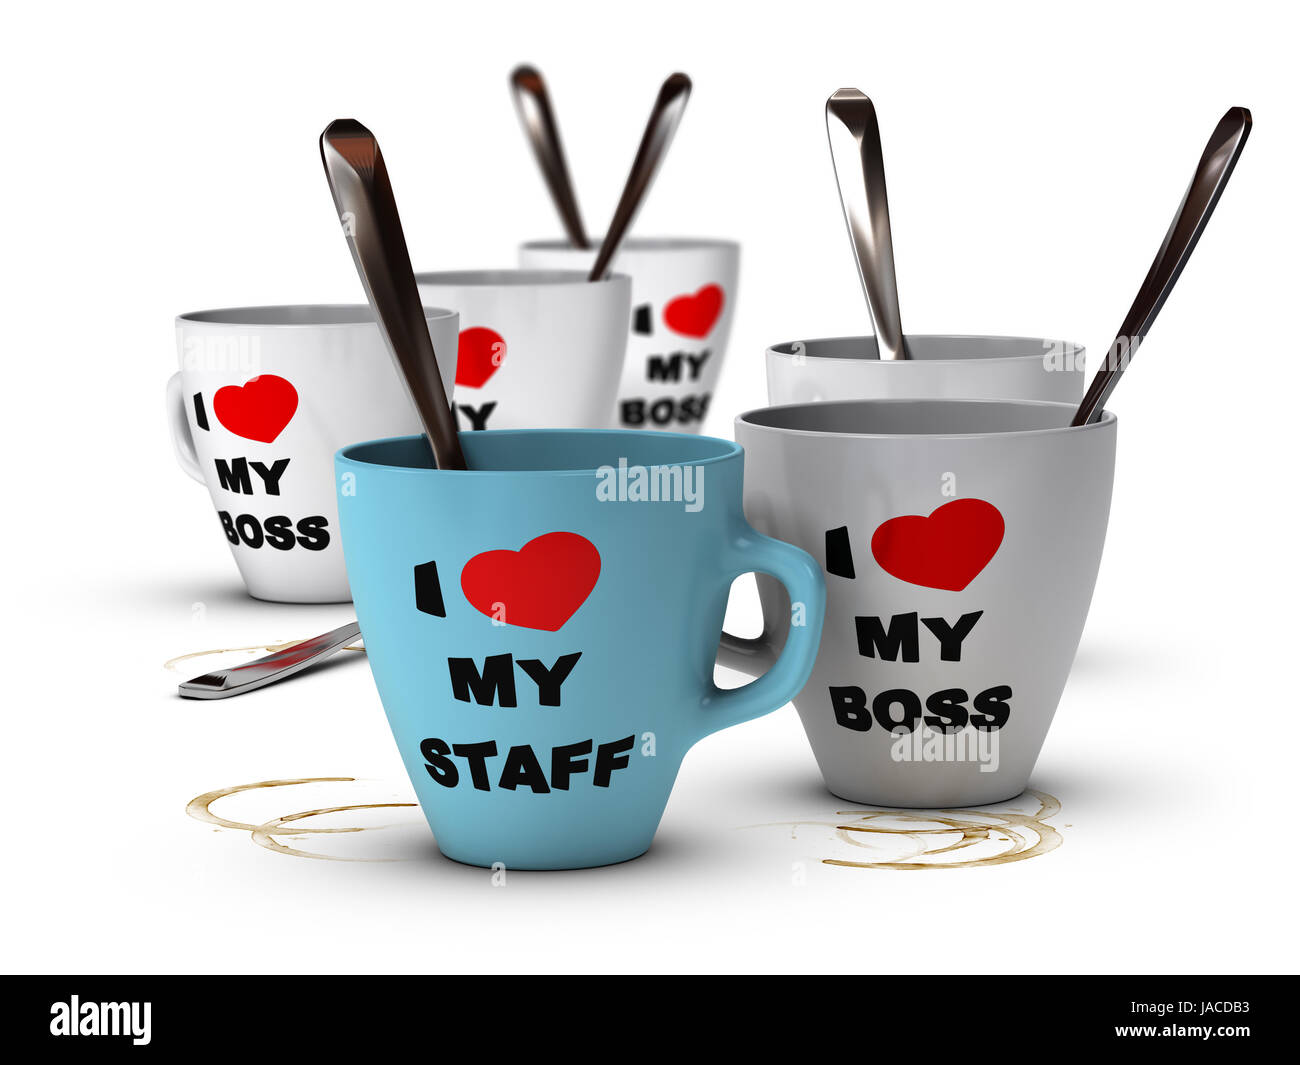 Many mugs where it is written I love my staff and my boss, symbol of staff relations and motivation in workplace. - Stock Image